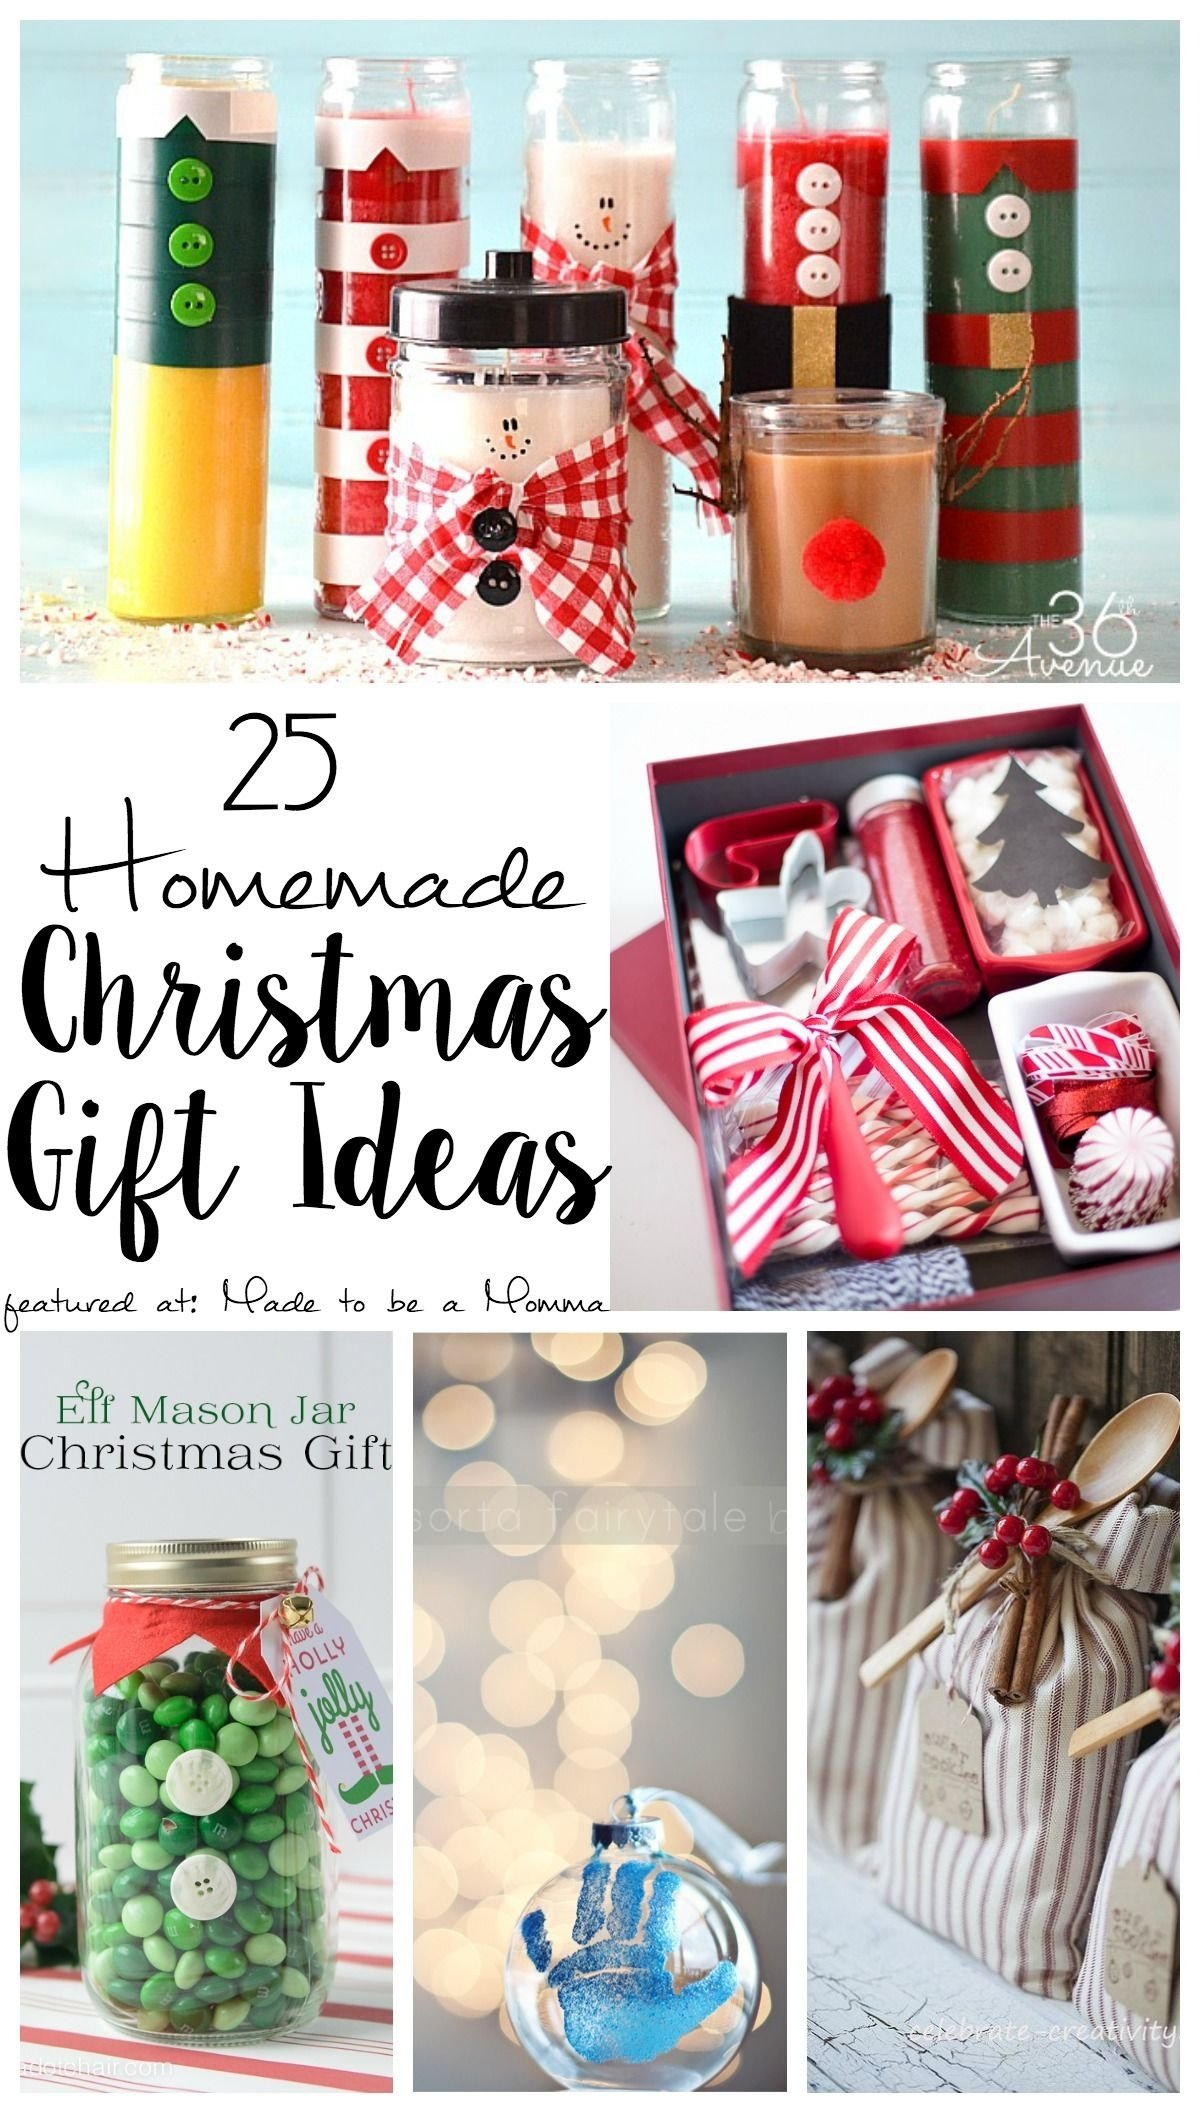 10 Attractive Pinterest Homemade Christmas Gift Ideas 25 homemade christmas gift ideas bloggers fun family projects 2021